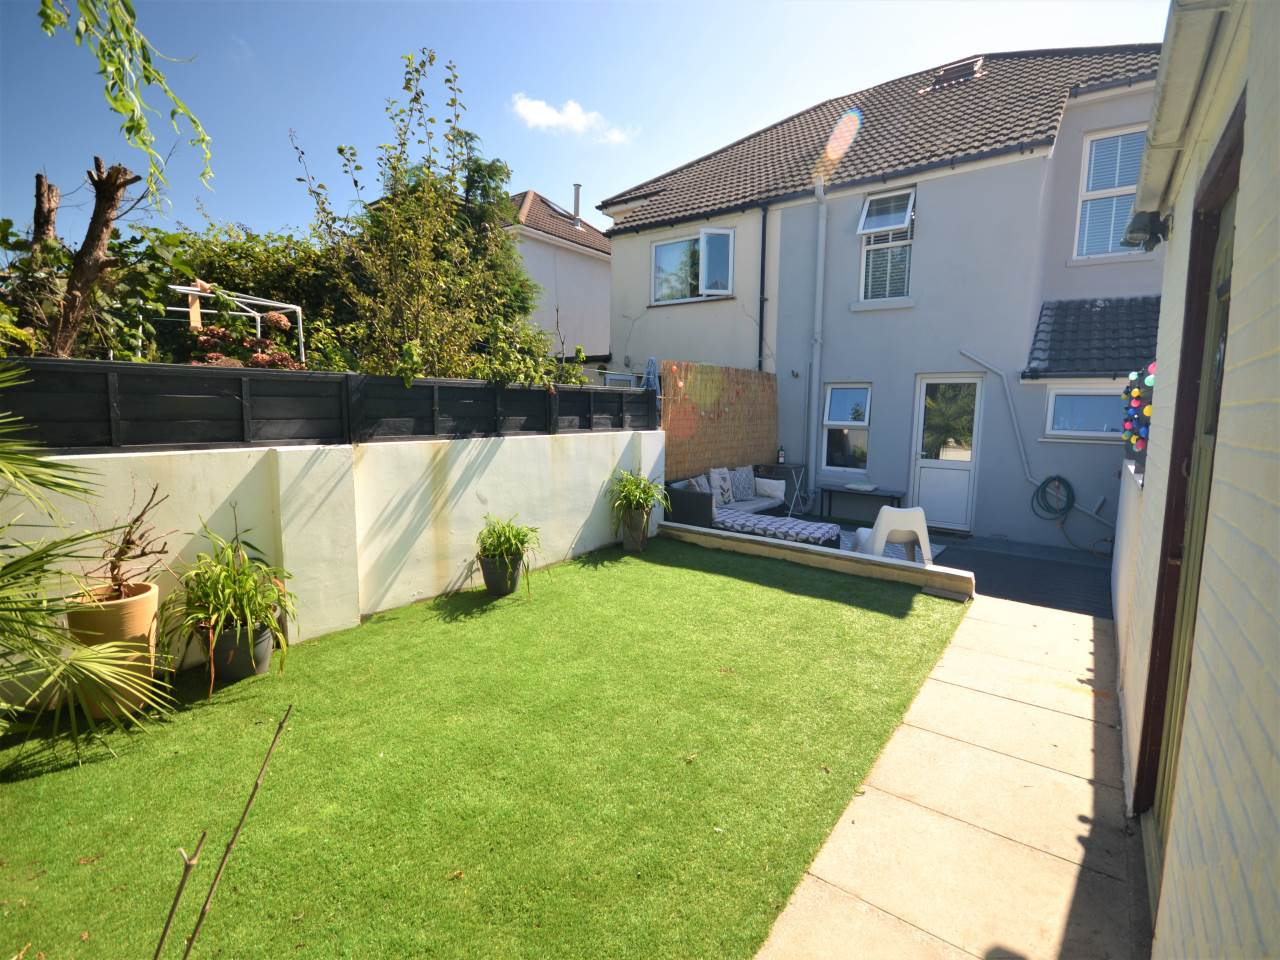 3 bed house for sale in Henville Road, Charminster 13